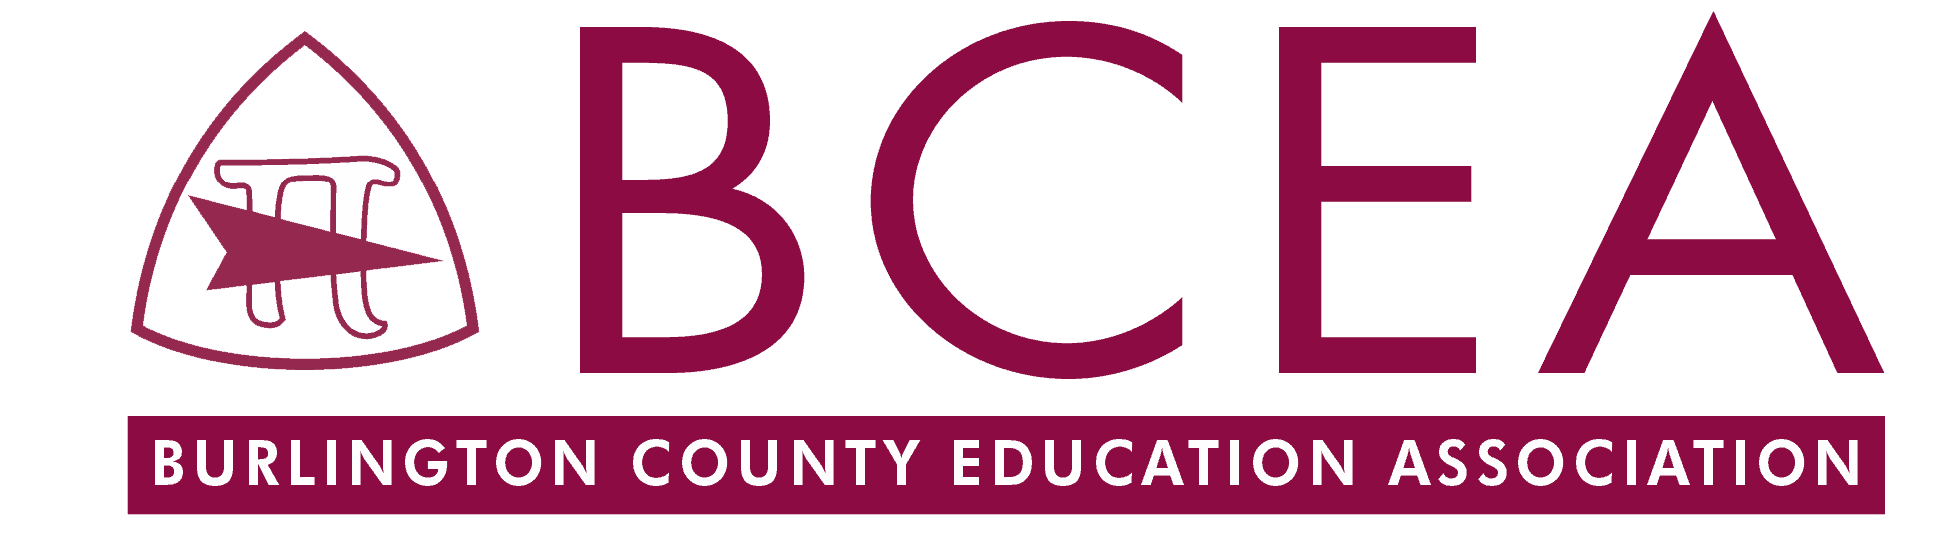 Burlington County Education Association